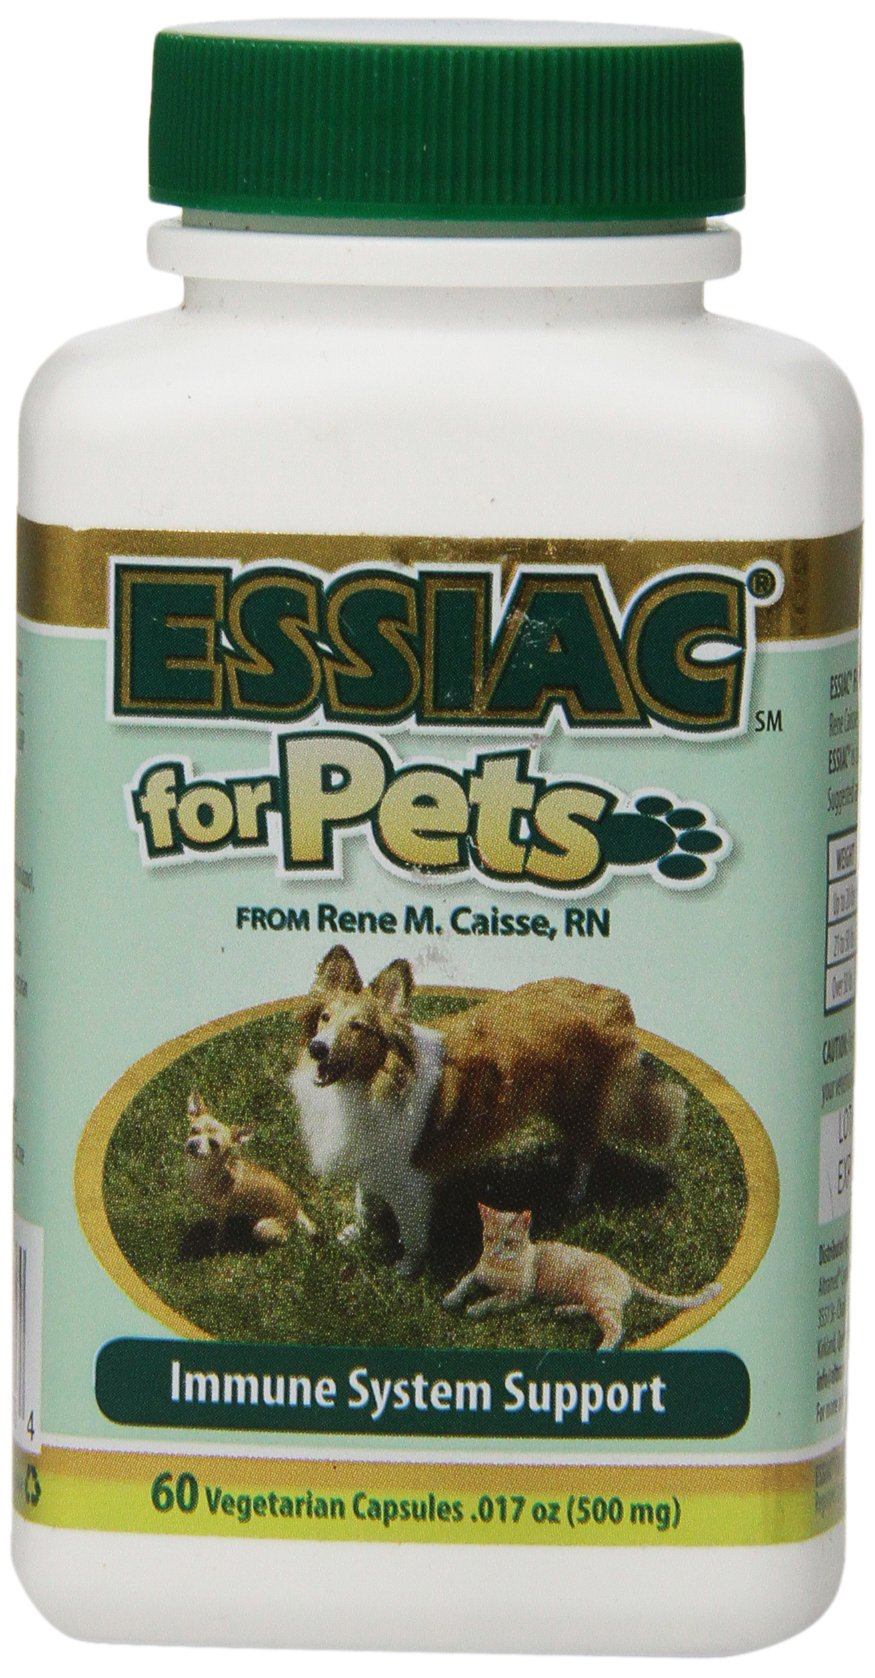 Essiac International Herbal Supplement for Pets, 60 Capsules by Essiac